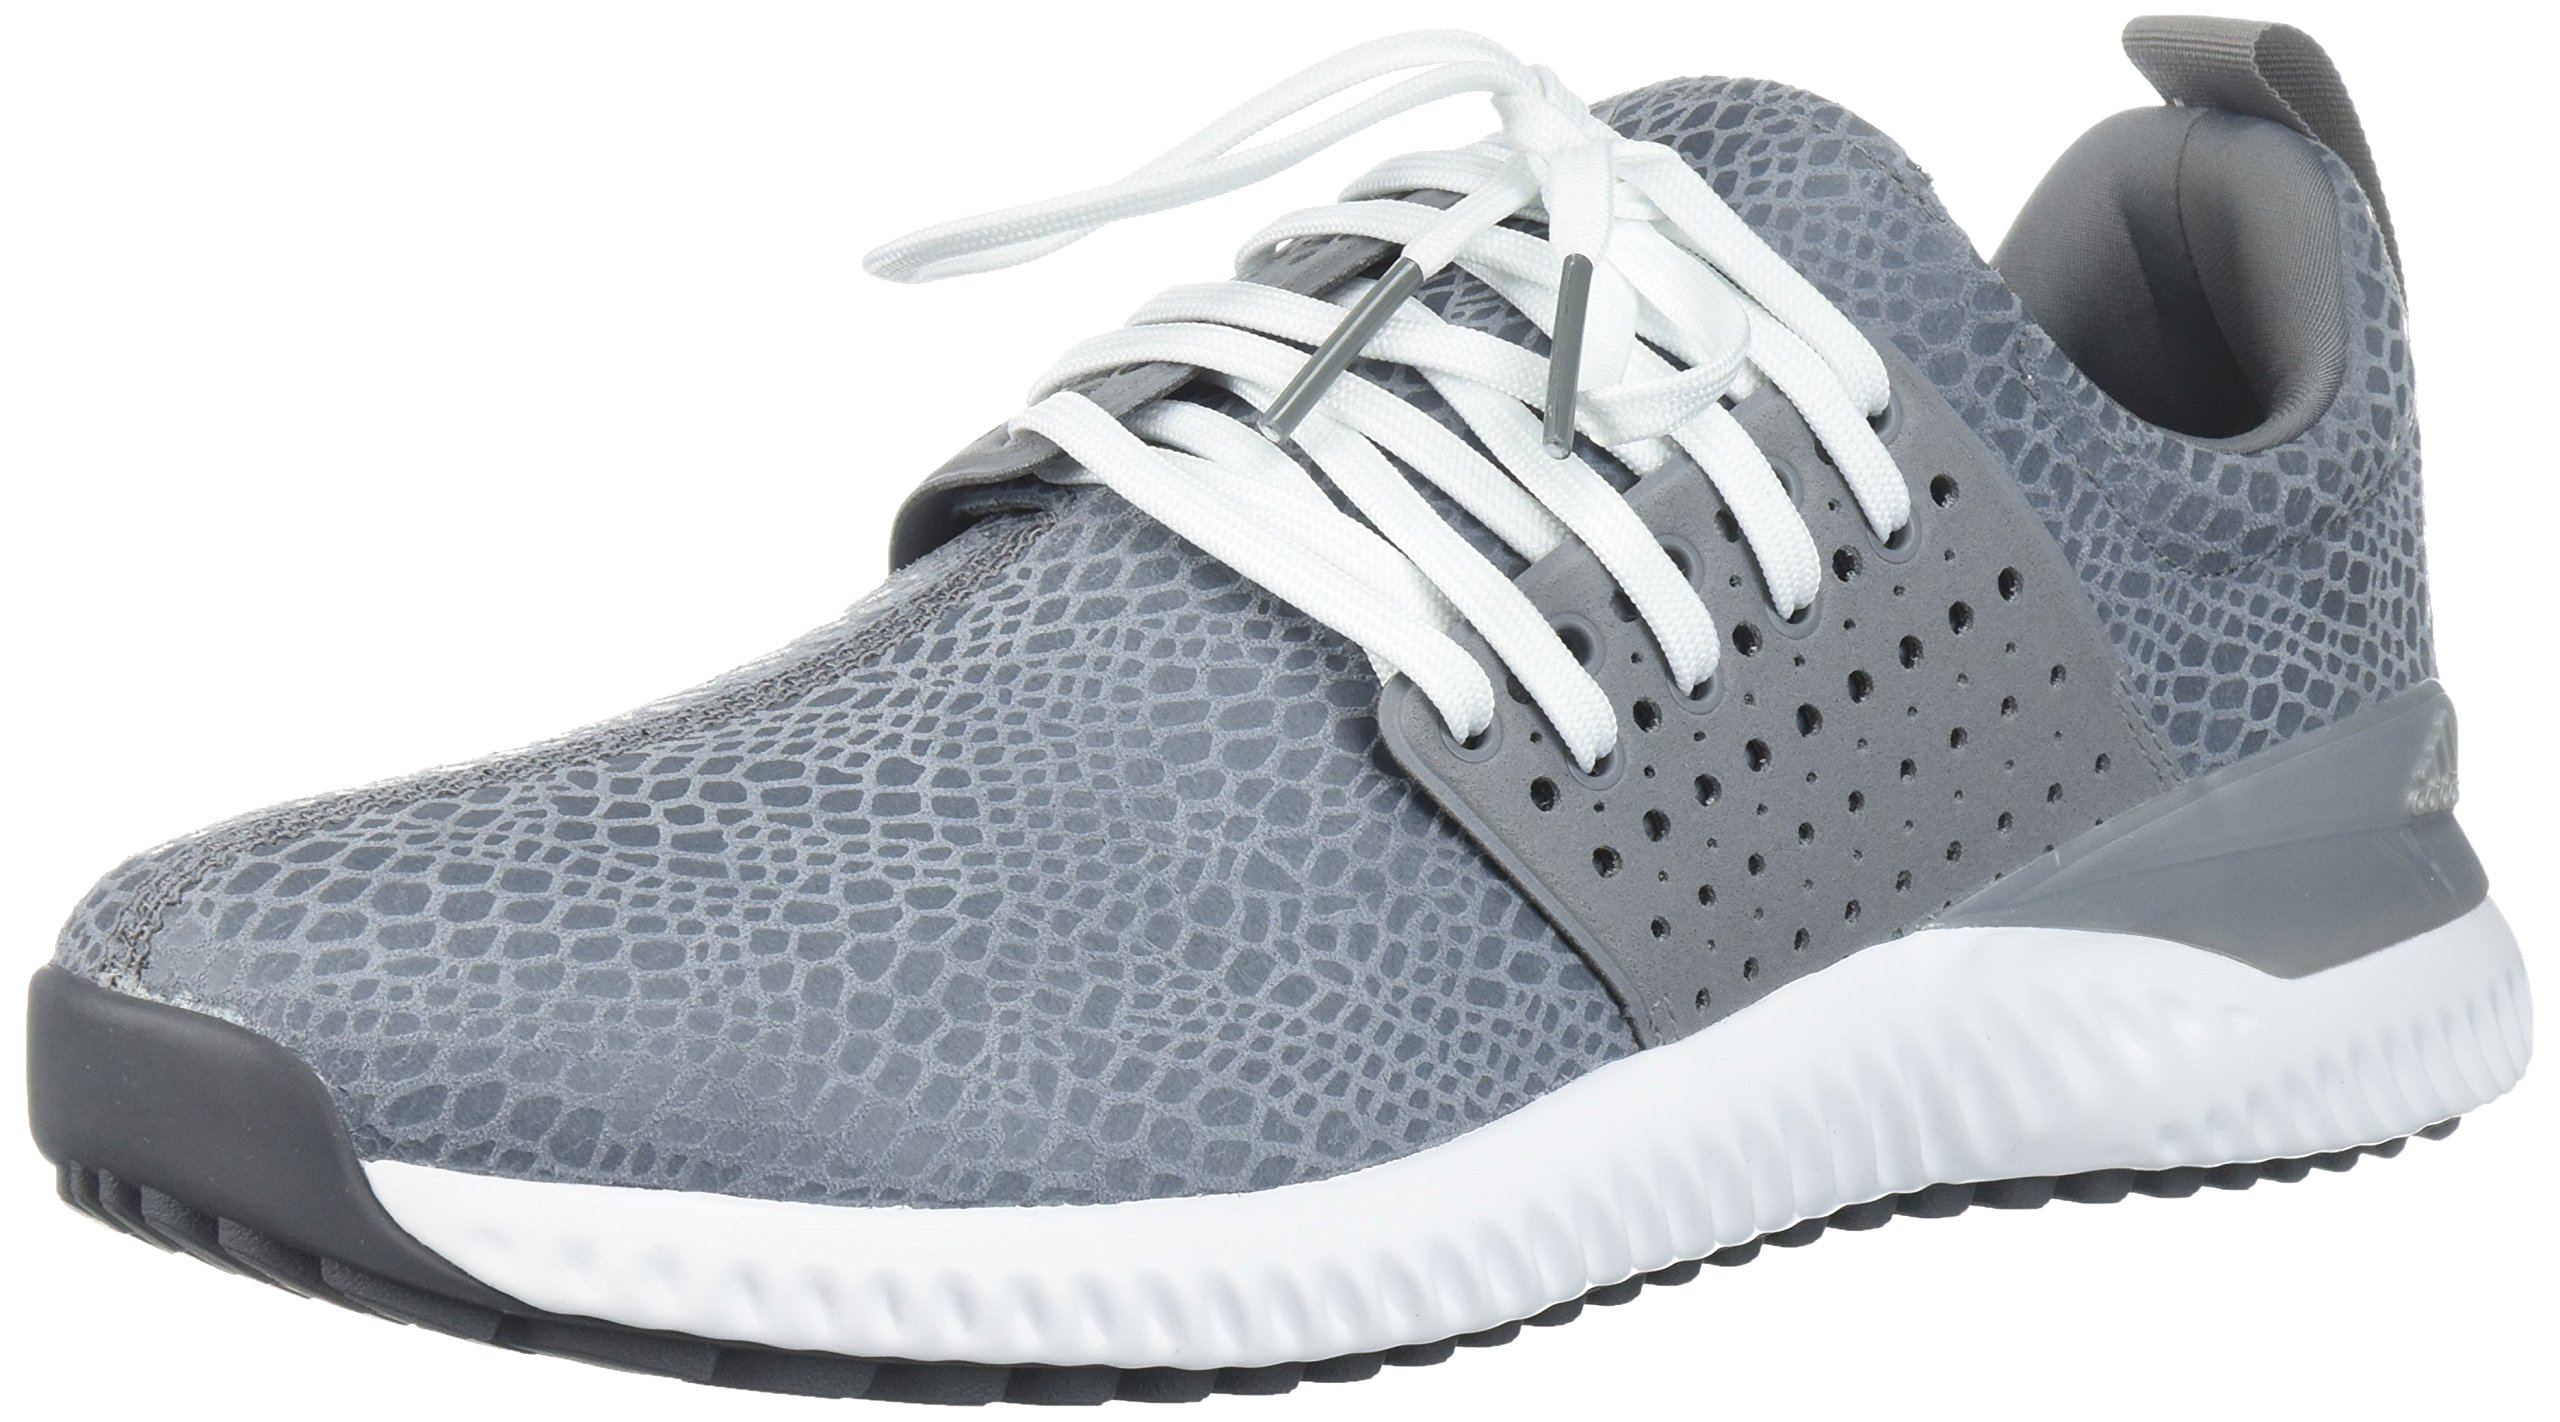 2fb167a5a0 Galleon - Adidas Men's Adicross Bounce Golf Shoe, Grey/White, 14 M US